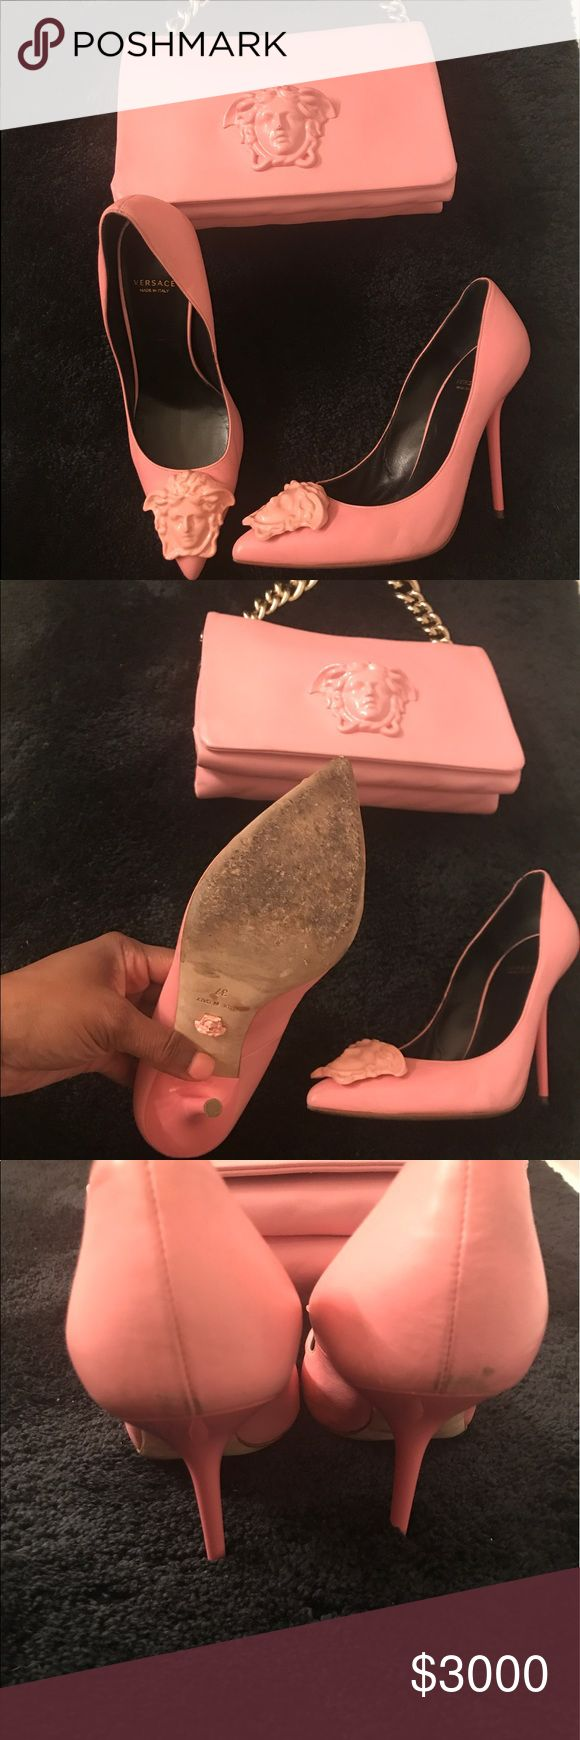 Versace limited edition medusa pink leather set! This is a limited edition VERSACE set. This set is 100% soft leather and SOLD OUT COMPLETELY WORLD WIDE. It's a must have. These items were worn 3-4 times. This set must be sold together! $2000 via 🅿️🅿️ or cash app Versace Bags Mini Bags